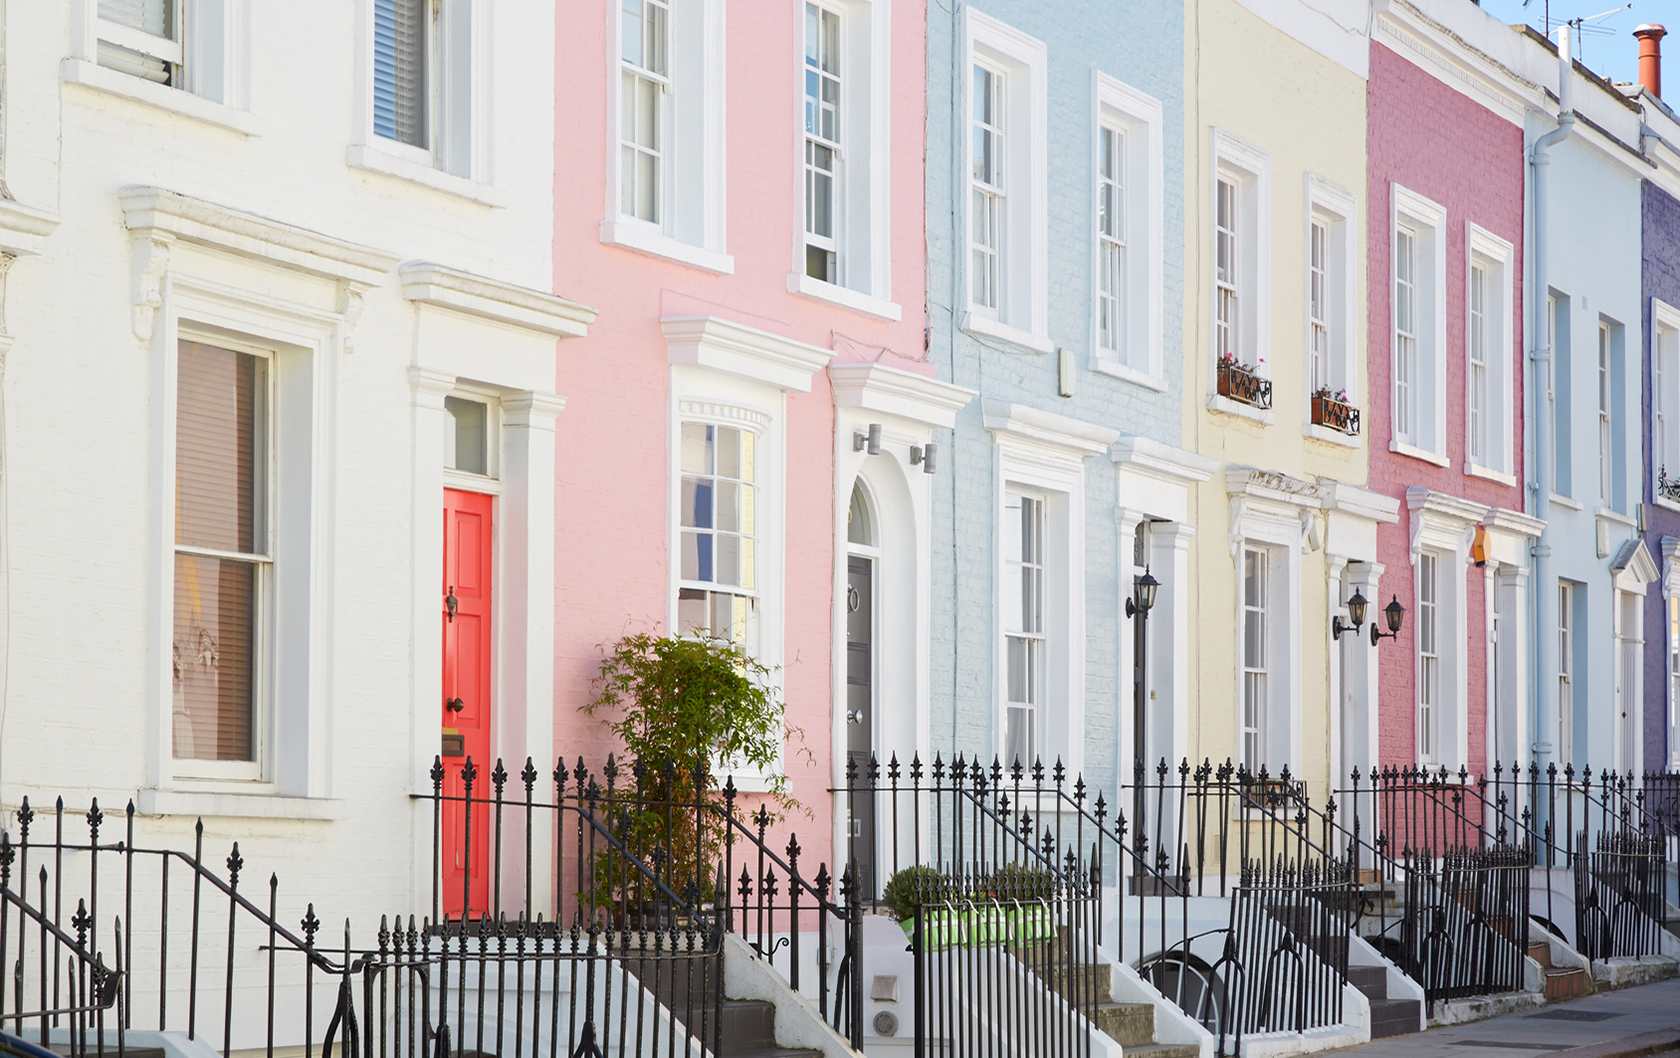 Row of pastel coloured houses in Notting Hill